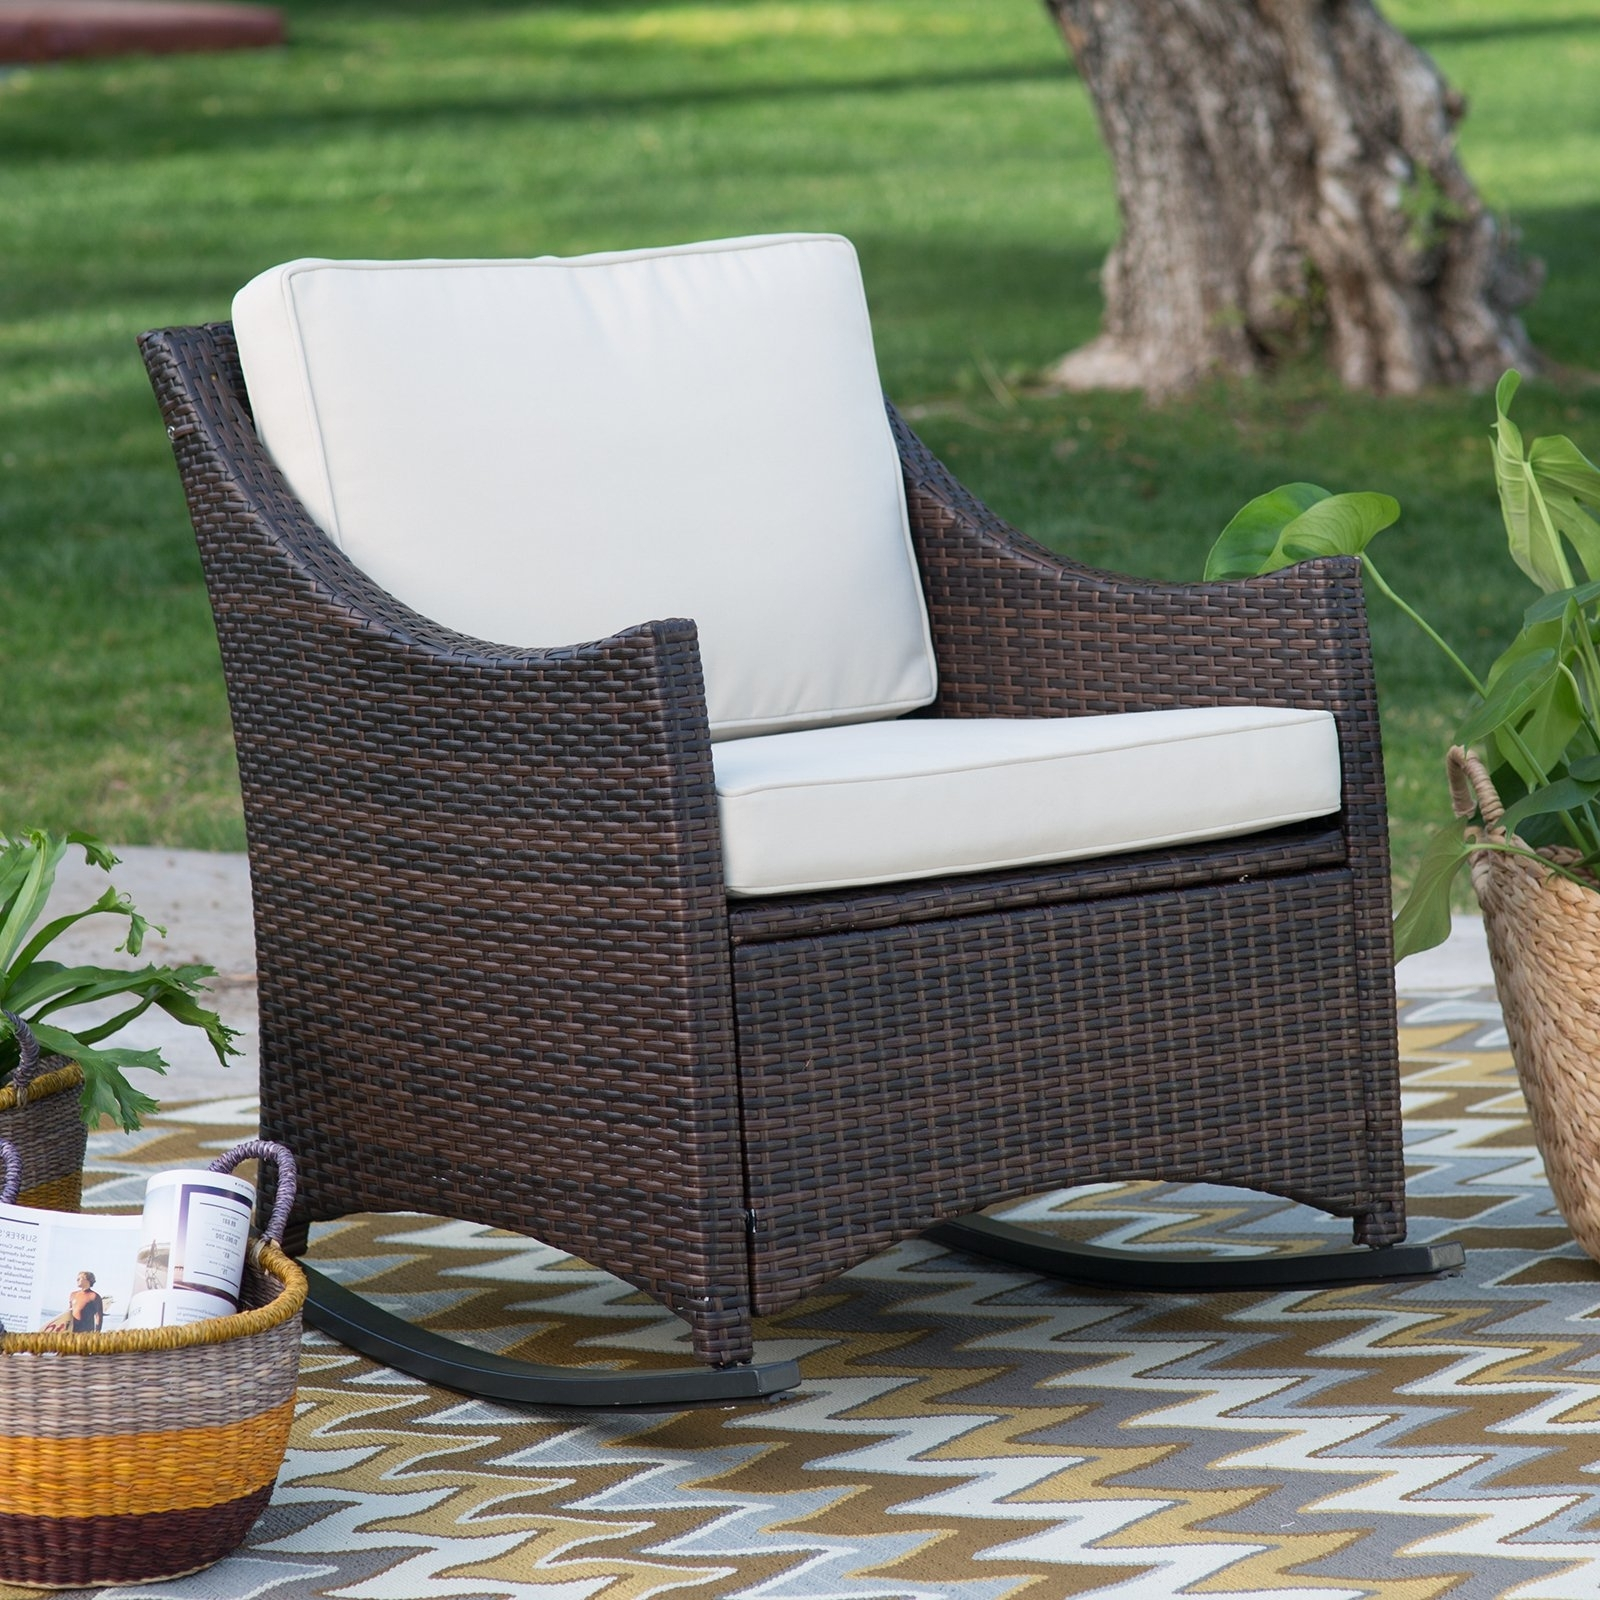 Wicker Rocking Chairs For Outdoors In Recent Chair (View 7 of 15)